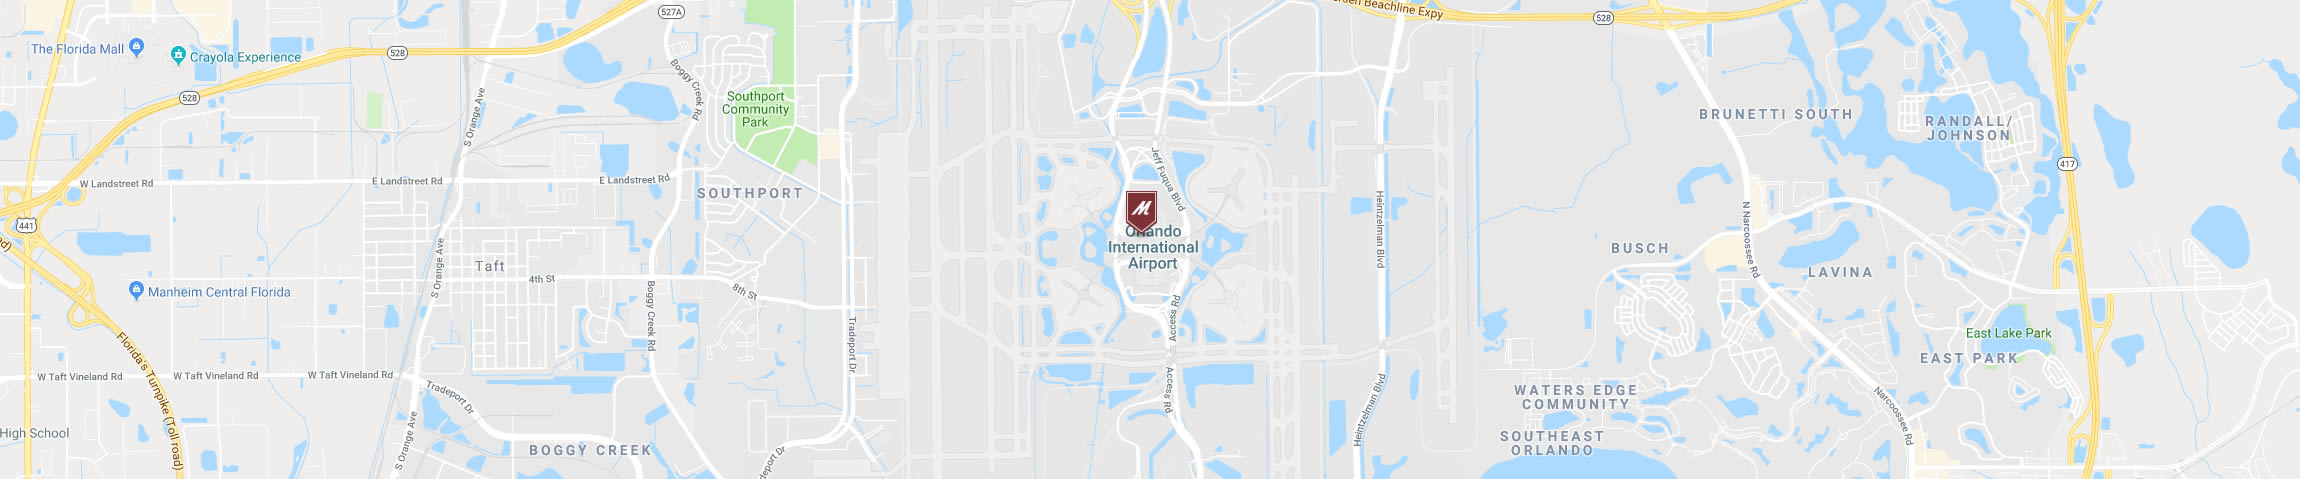 Google Map for the Orlando Airport Location